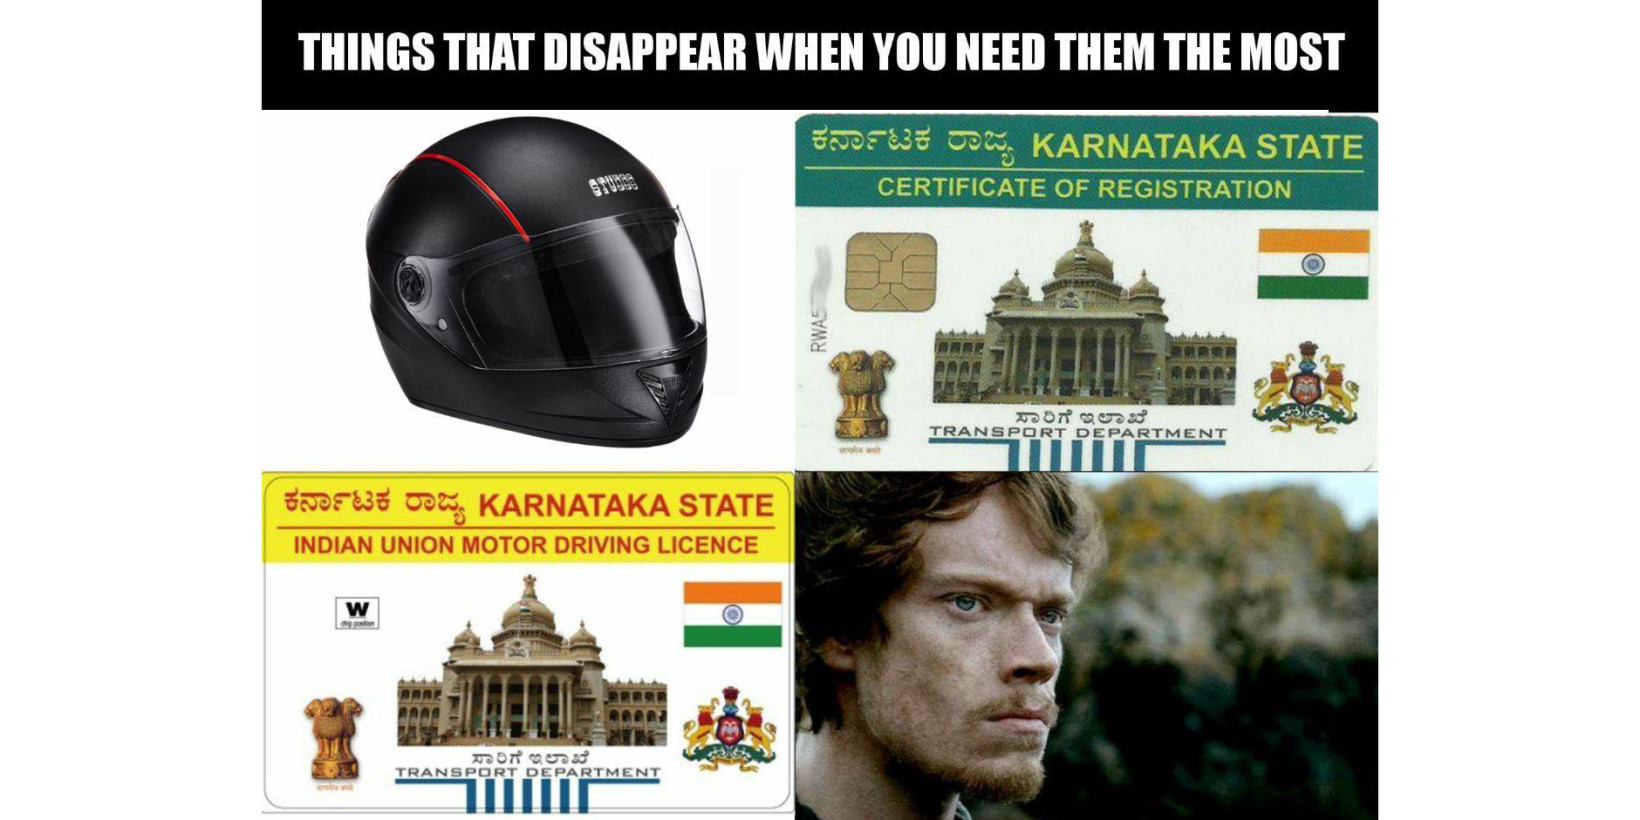 Bangalore police's dank memes fix their image online, but not IRL